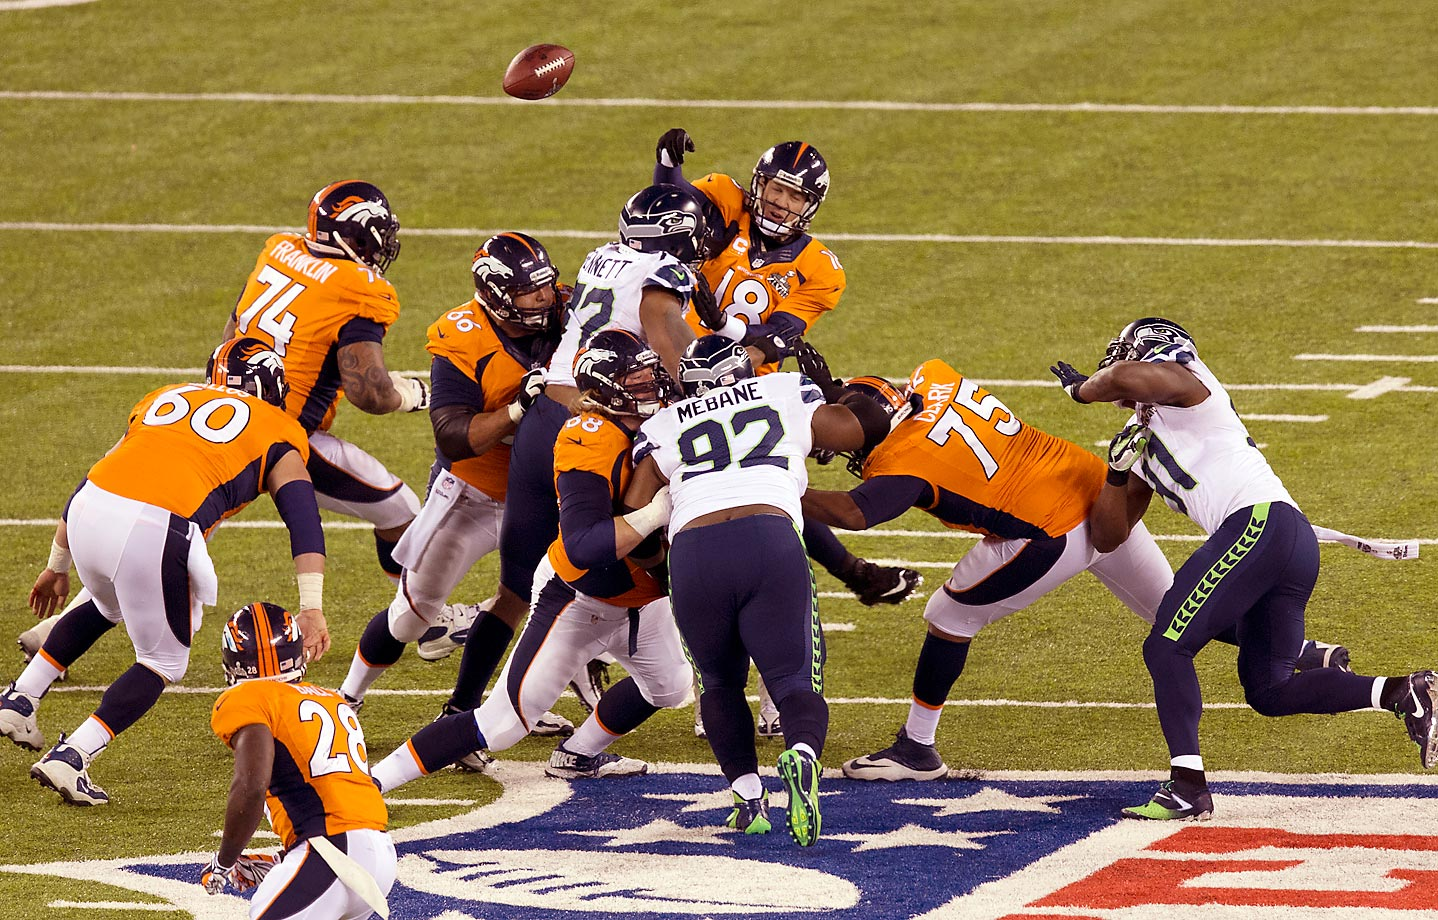 Michael Bennett of the Seahawks forces a Peyton Manning fumble in Super Bowl XLVIII in New Jersey.